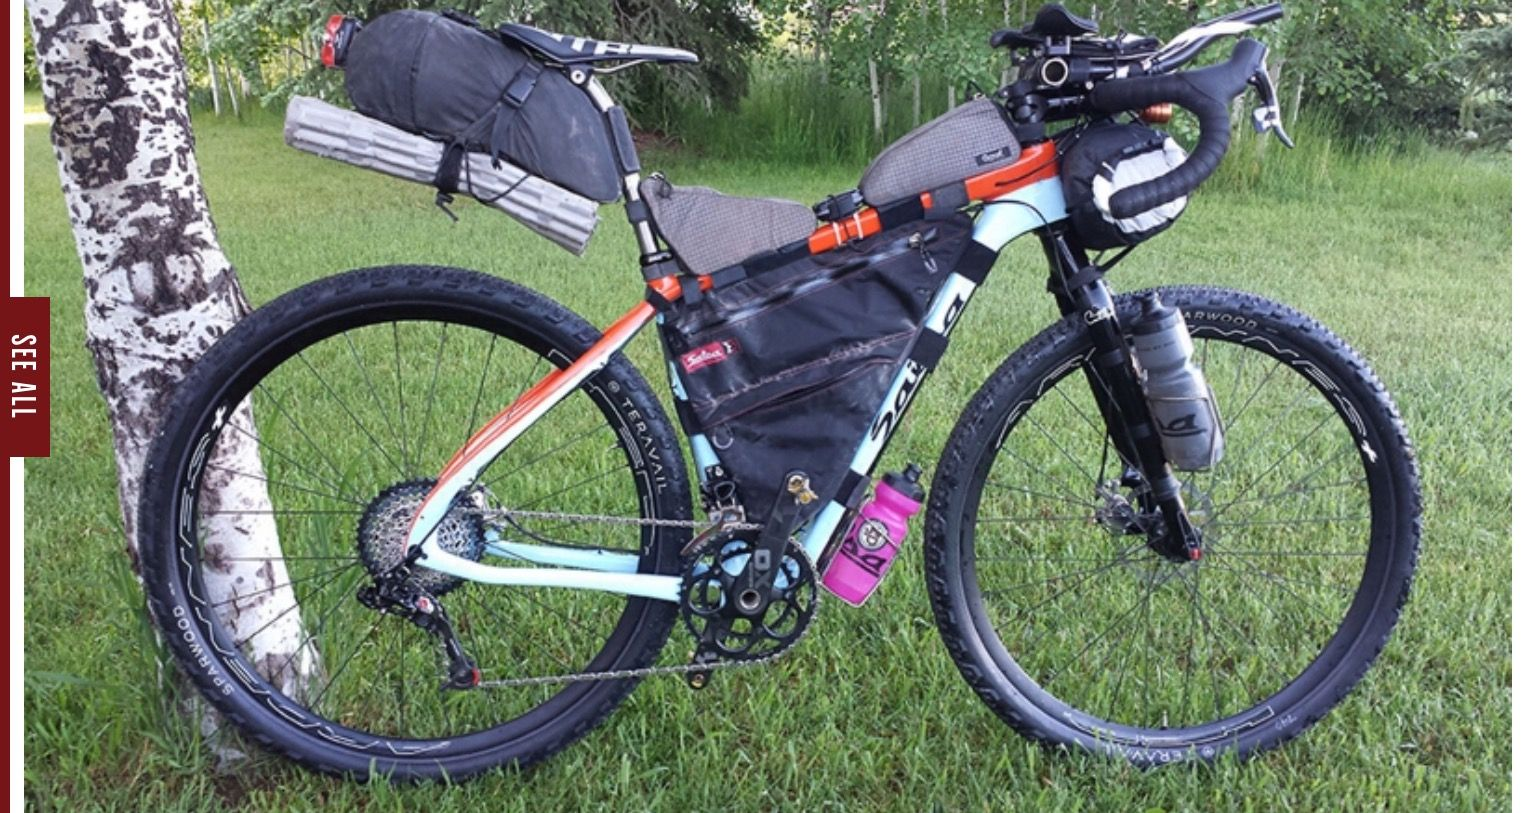 Pin By Roy Dahn On Touring Mountain Bike Races Bike Bike Camping